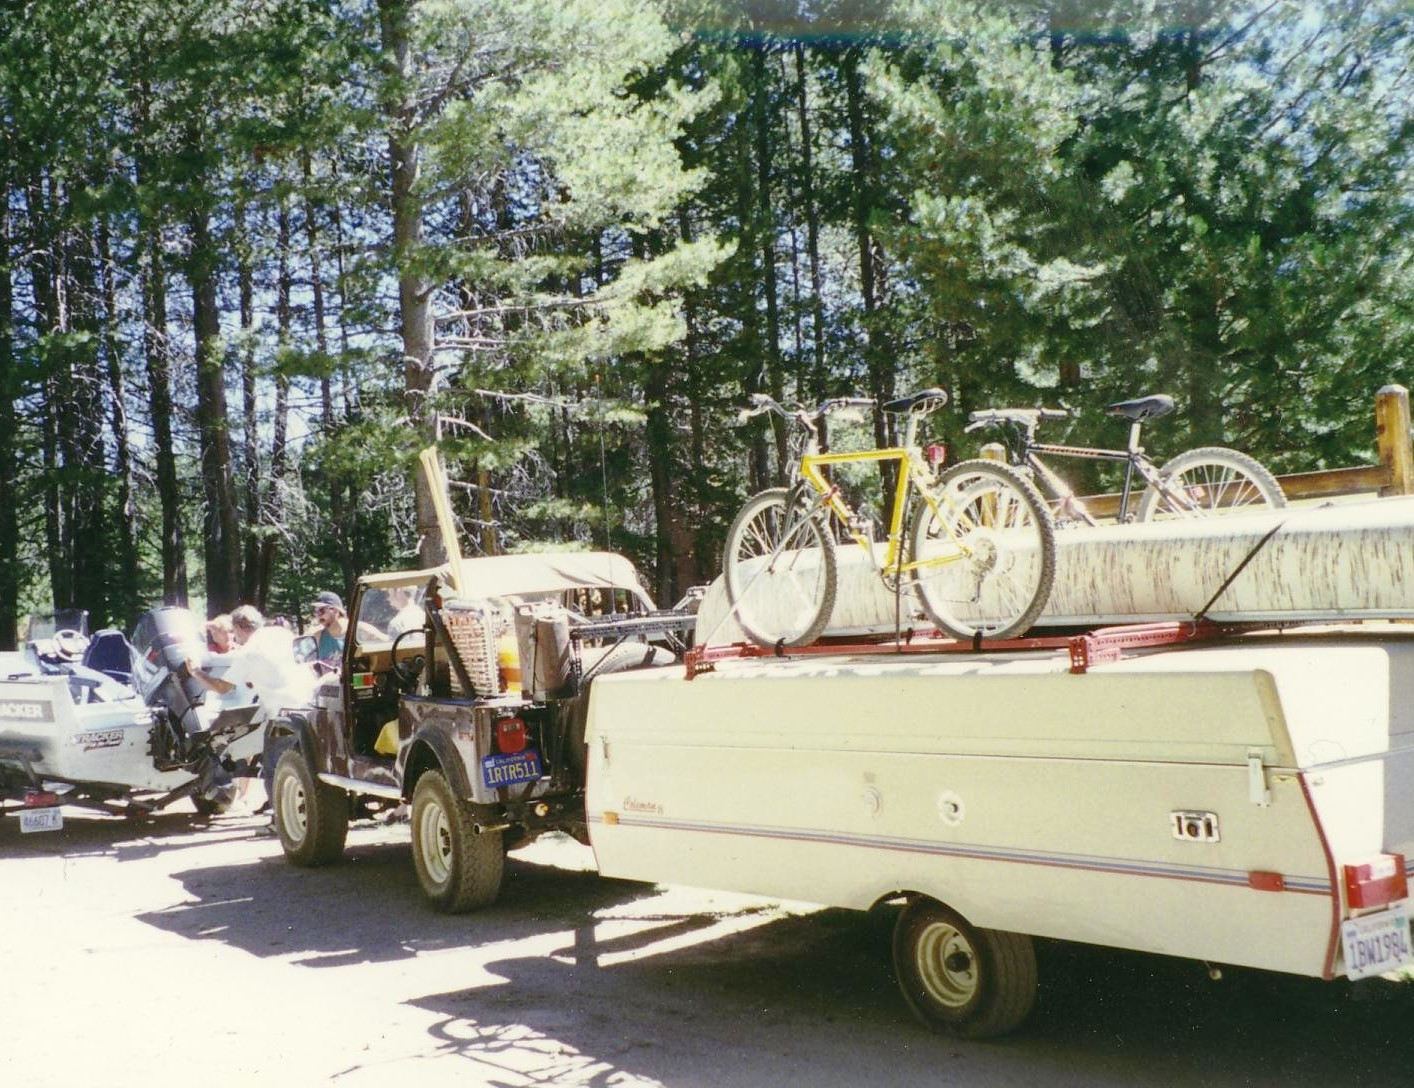 Click image for larger version  Name:Jeep and trailer.jpg Views:65 Size:454.1 KB ID:103702